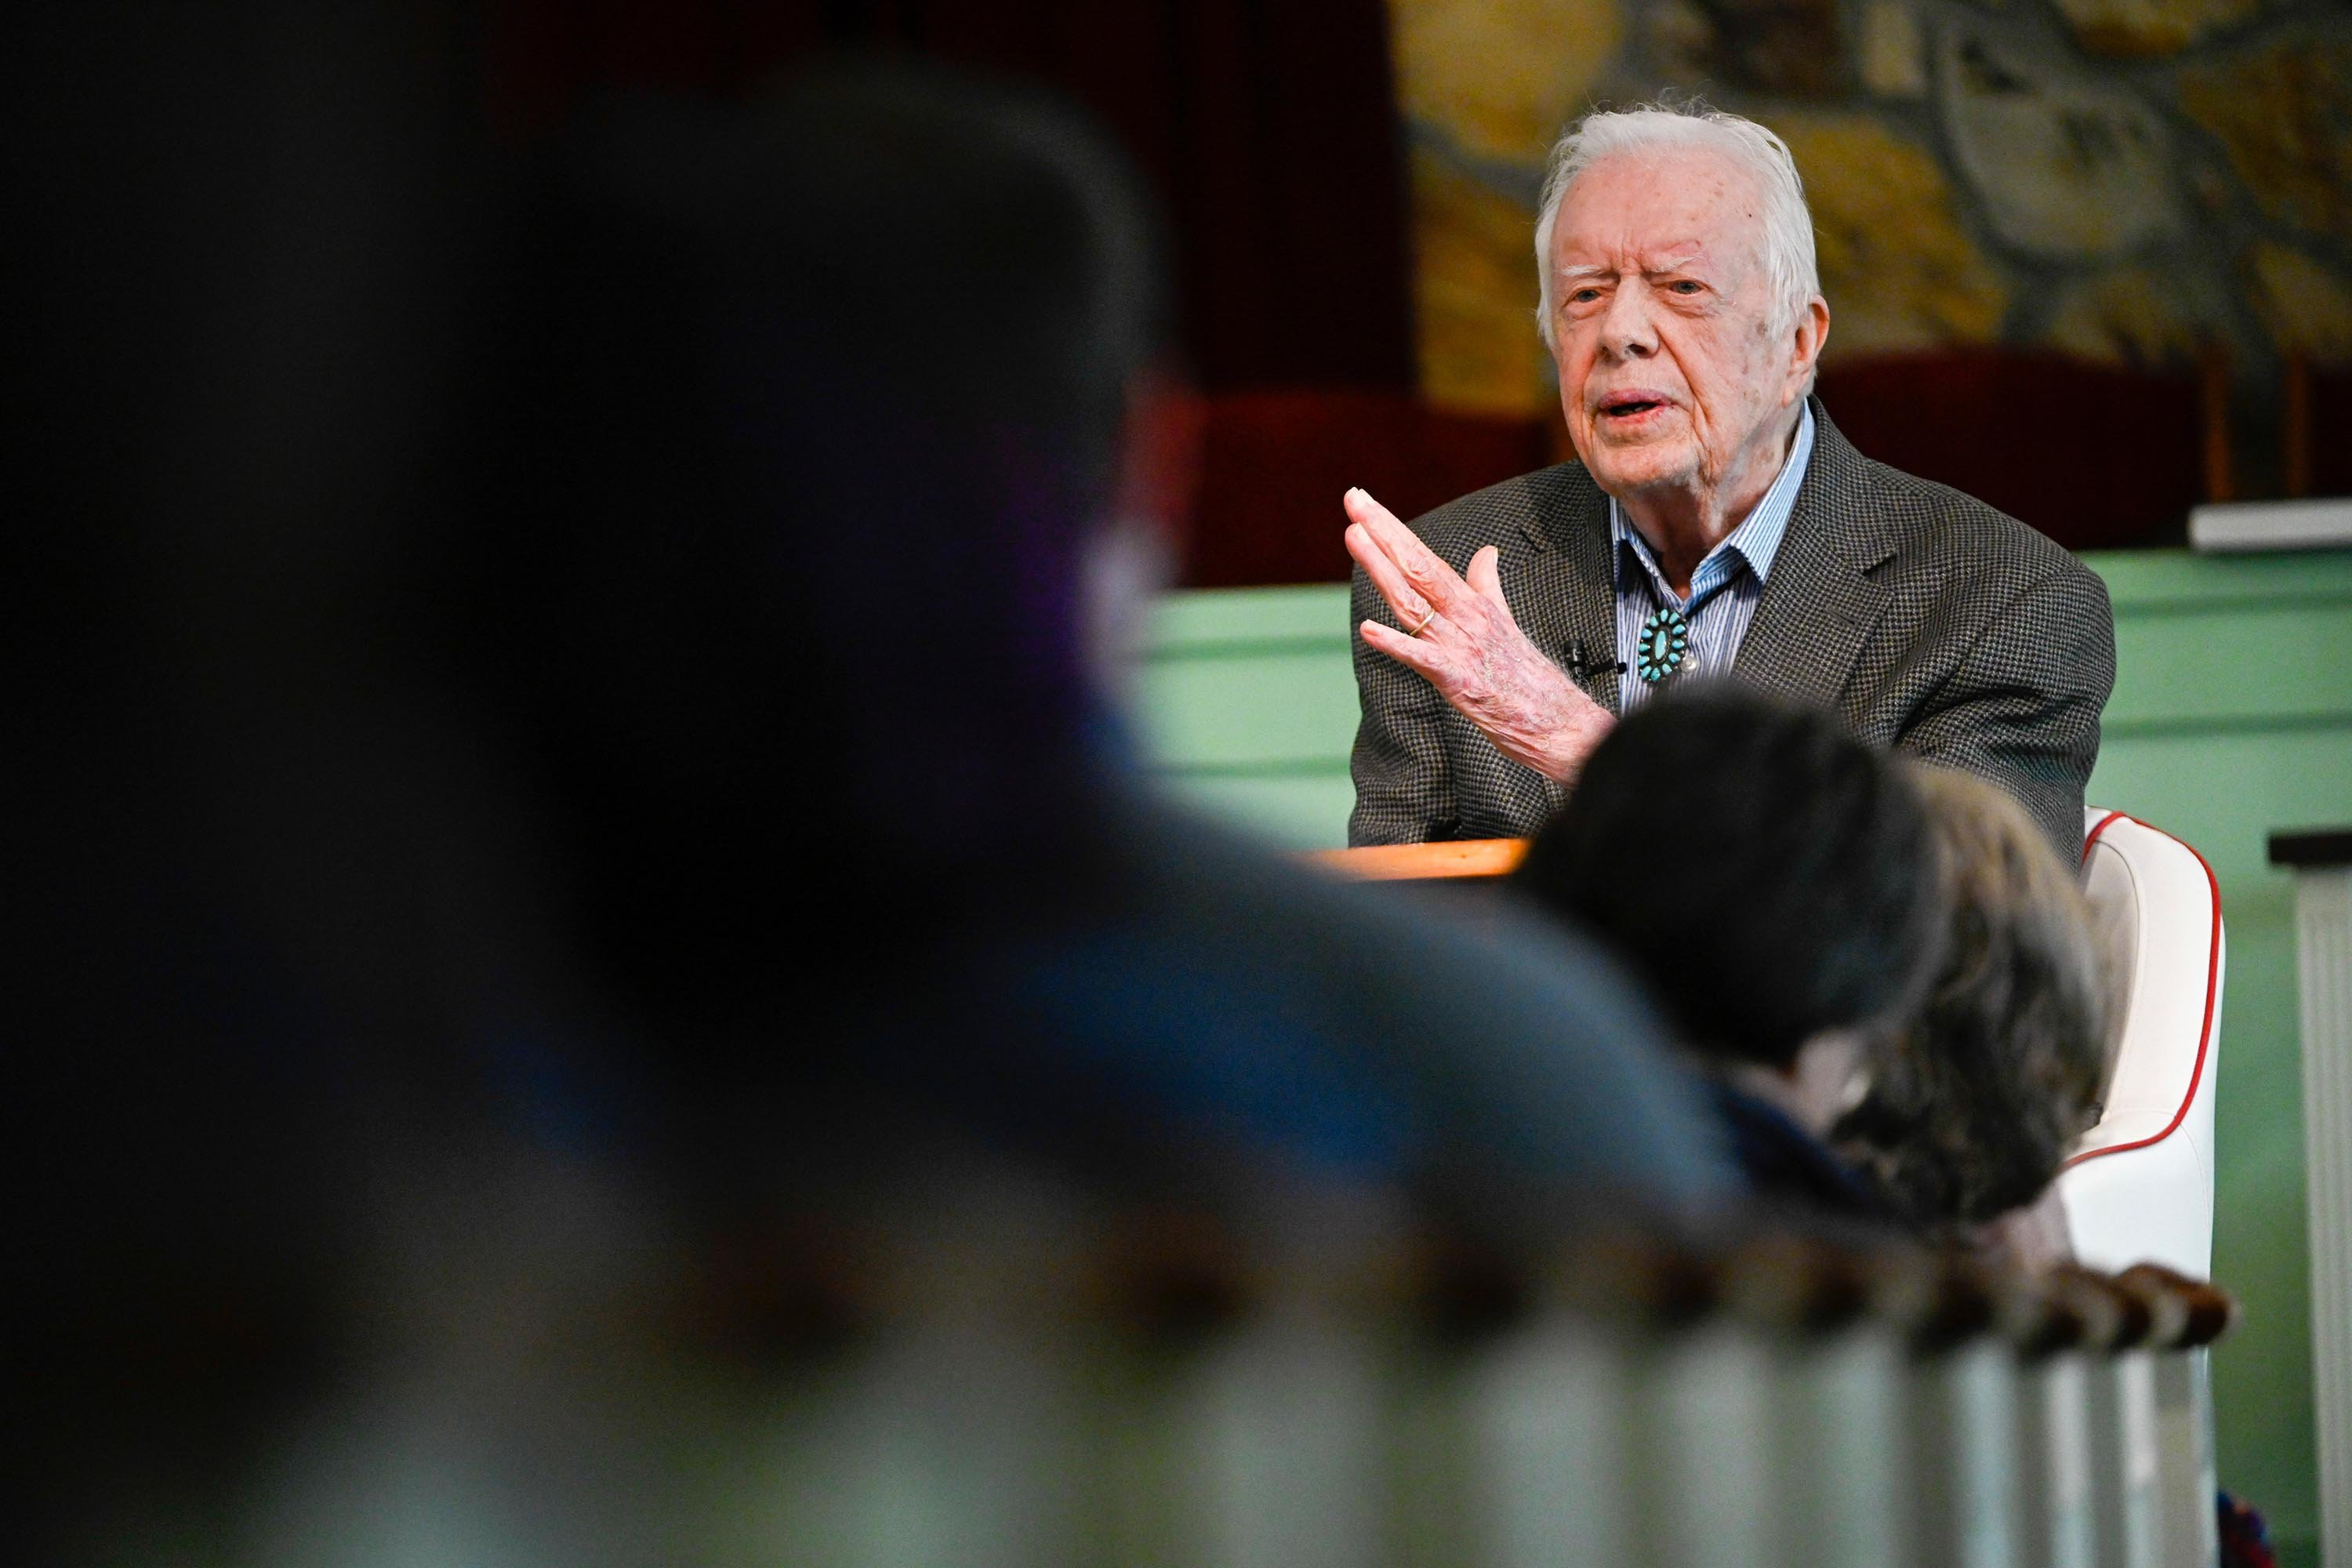 Jimmy Carter recovering in hospital after surgery to relieve pressure on his brain